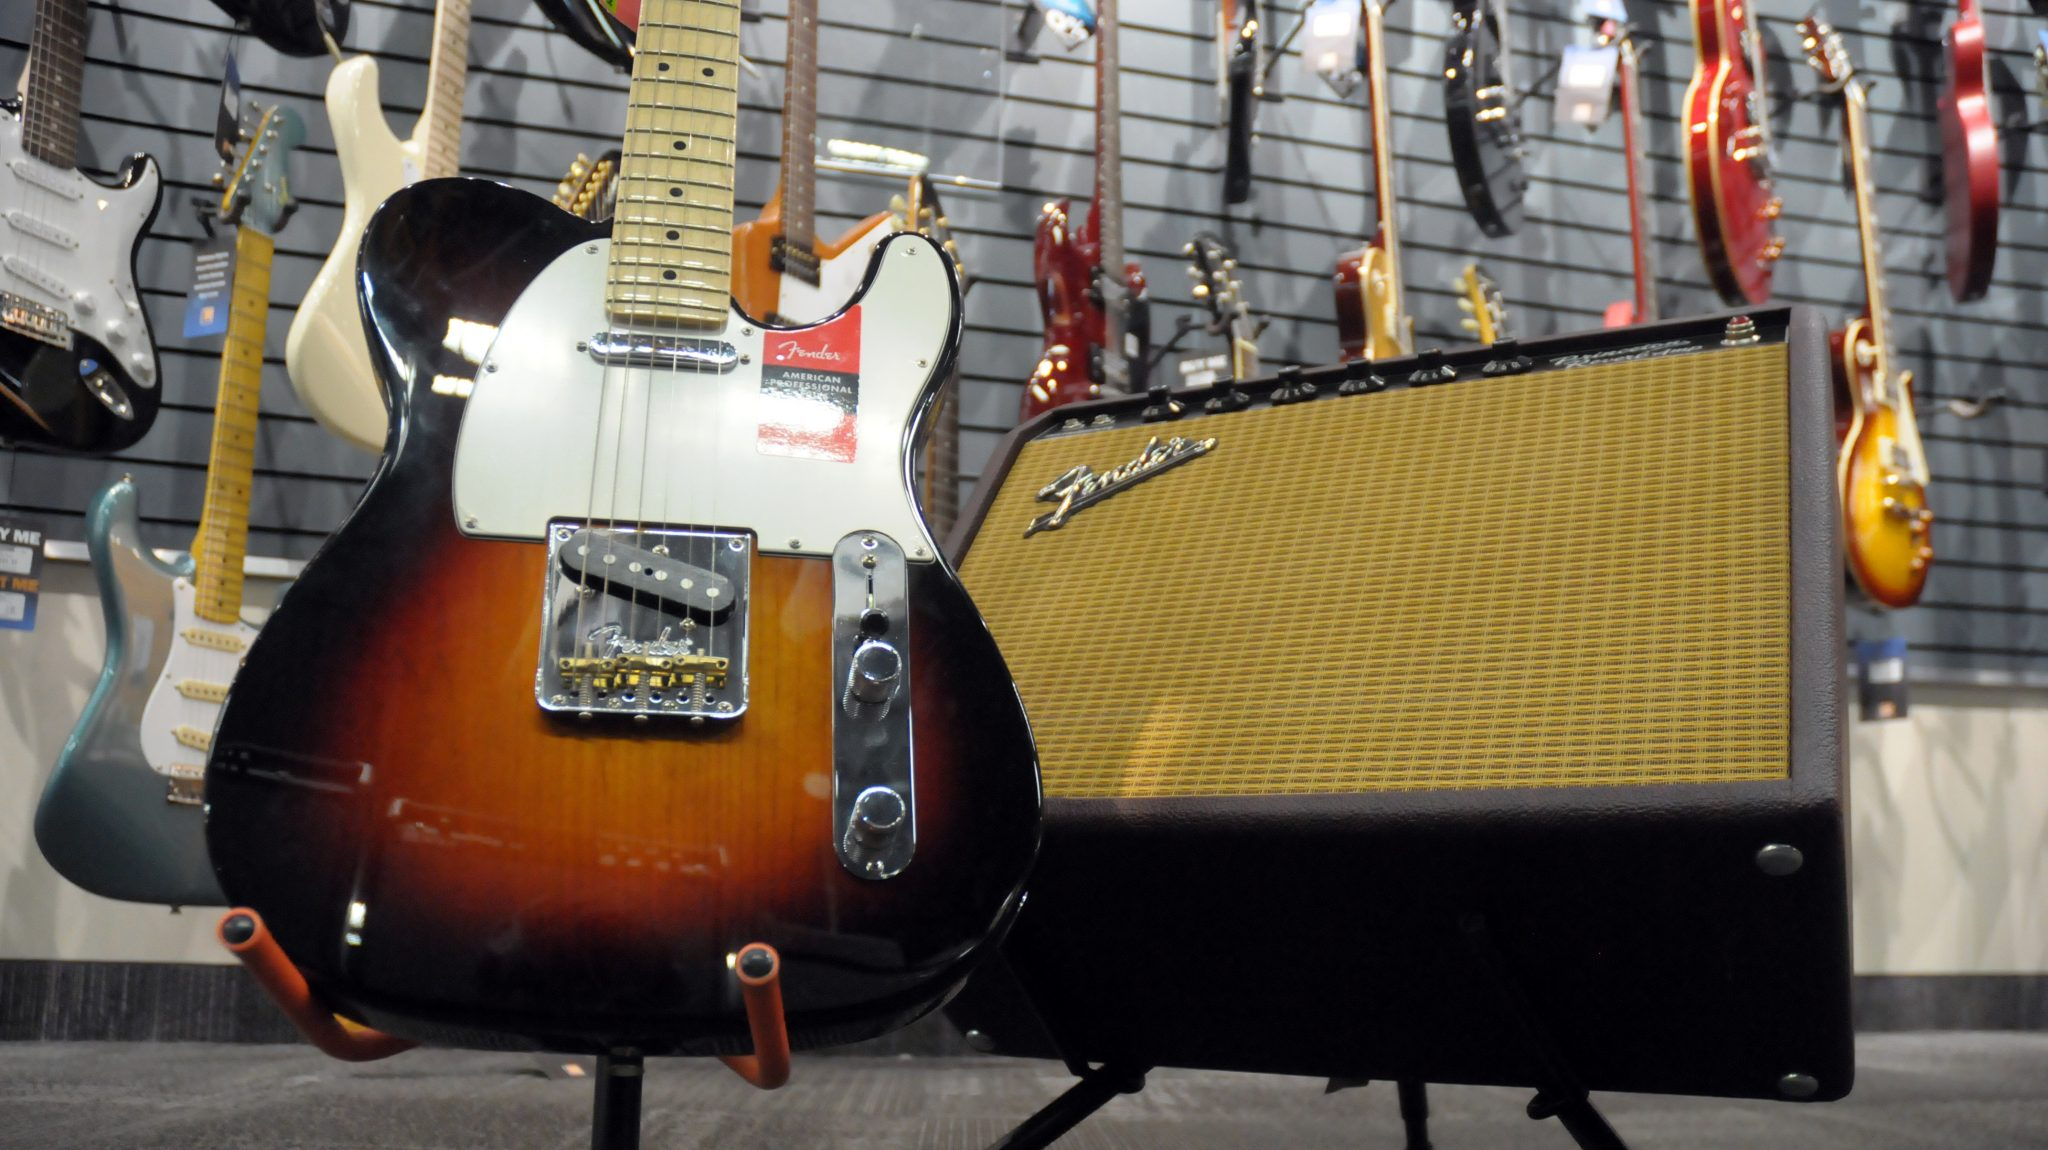 Fender Telecaster and Princeton Reverb